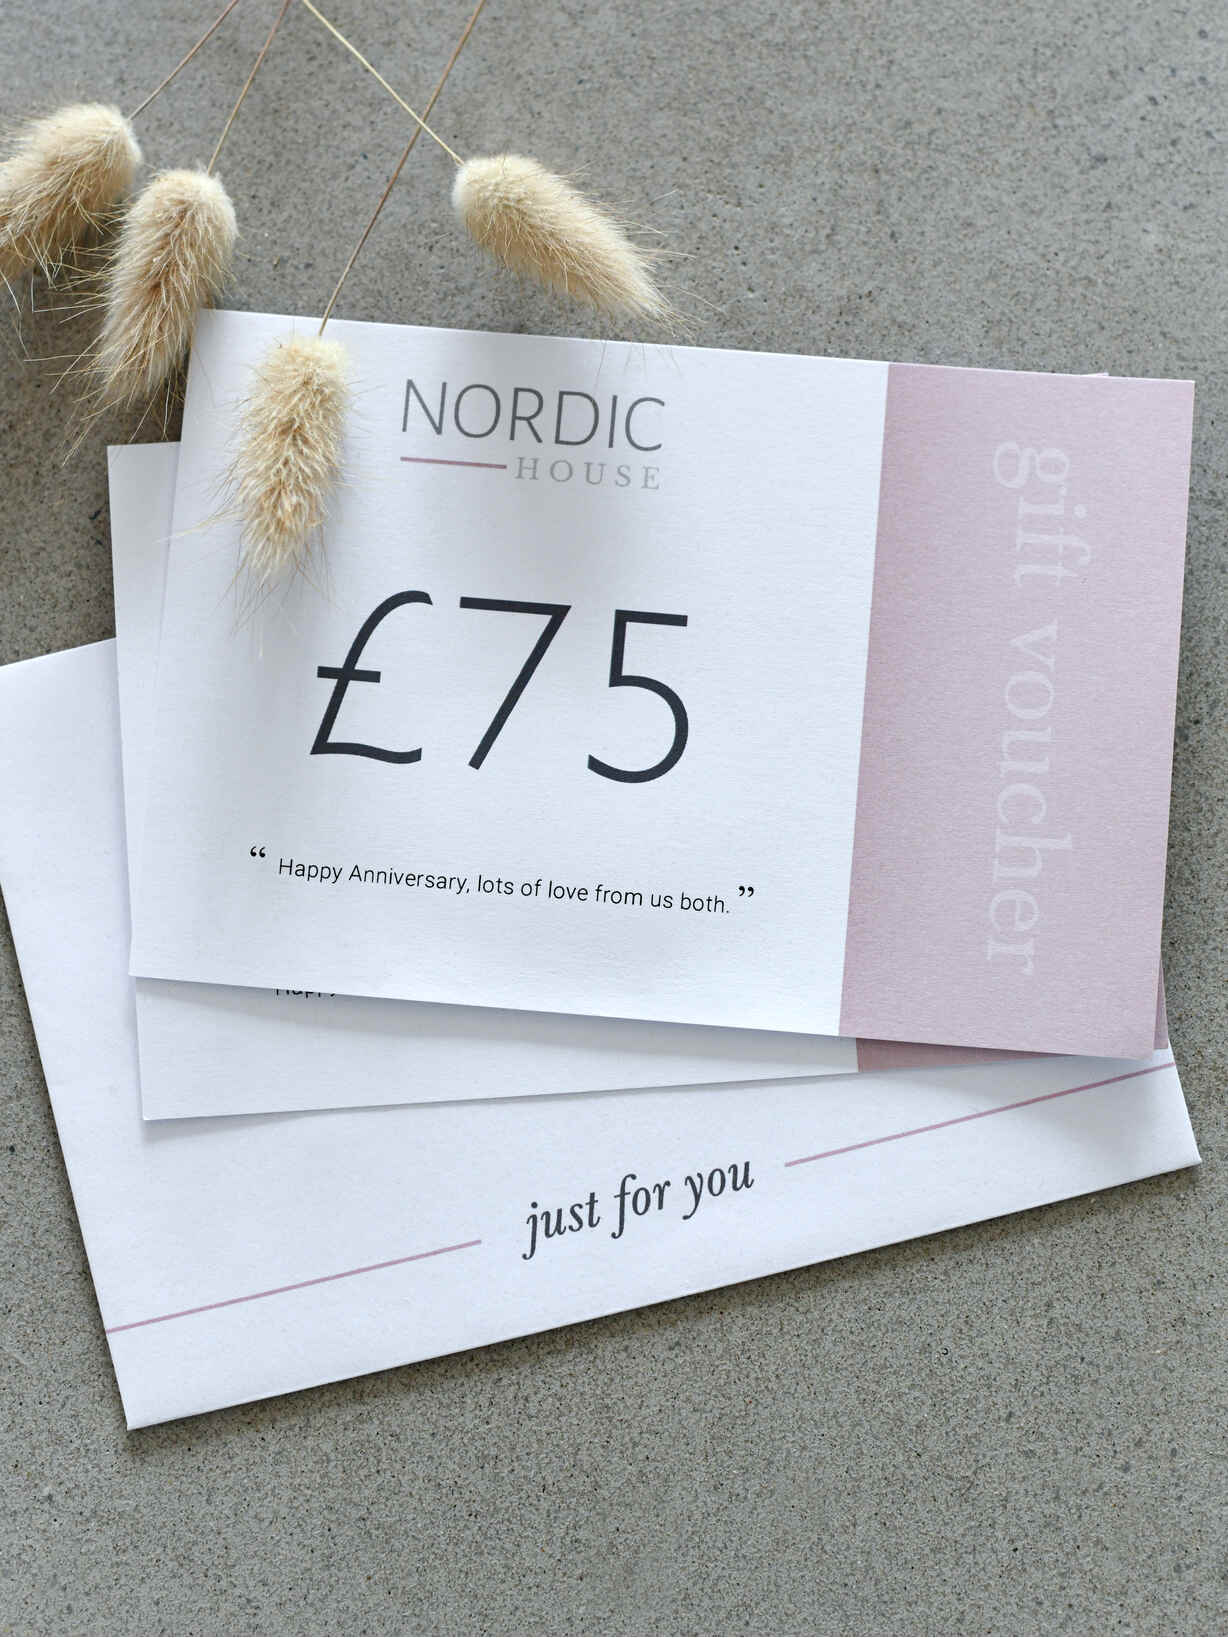 Nordic House Nordic House Gift Vouchers